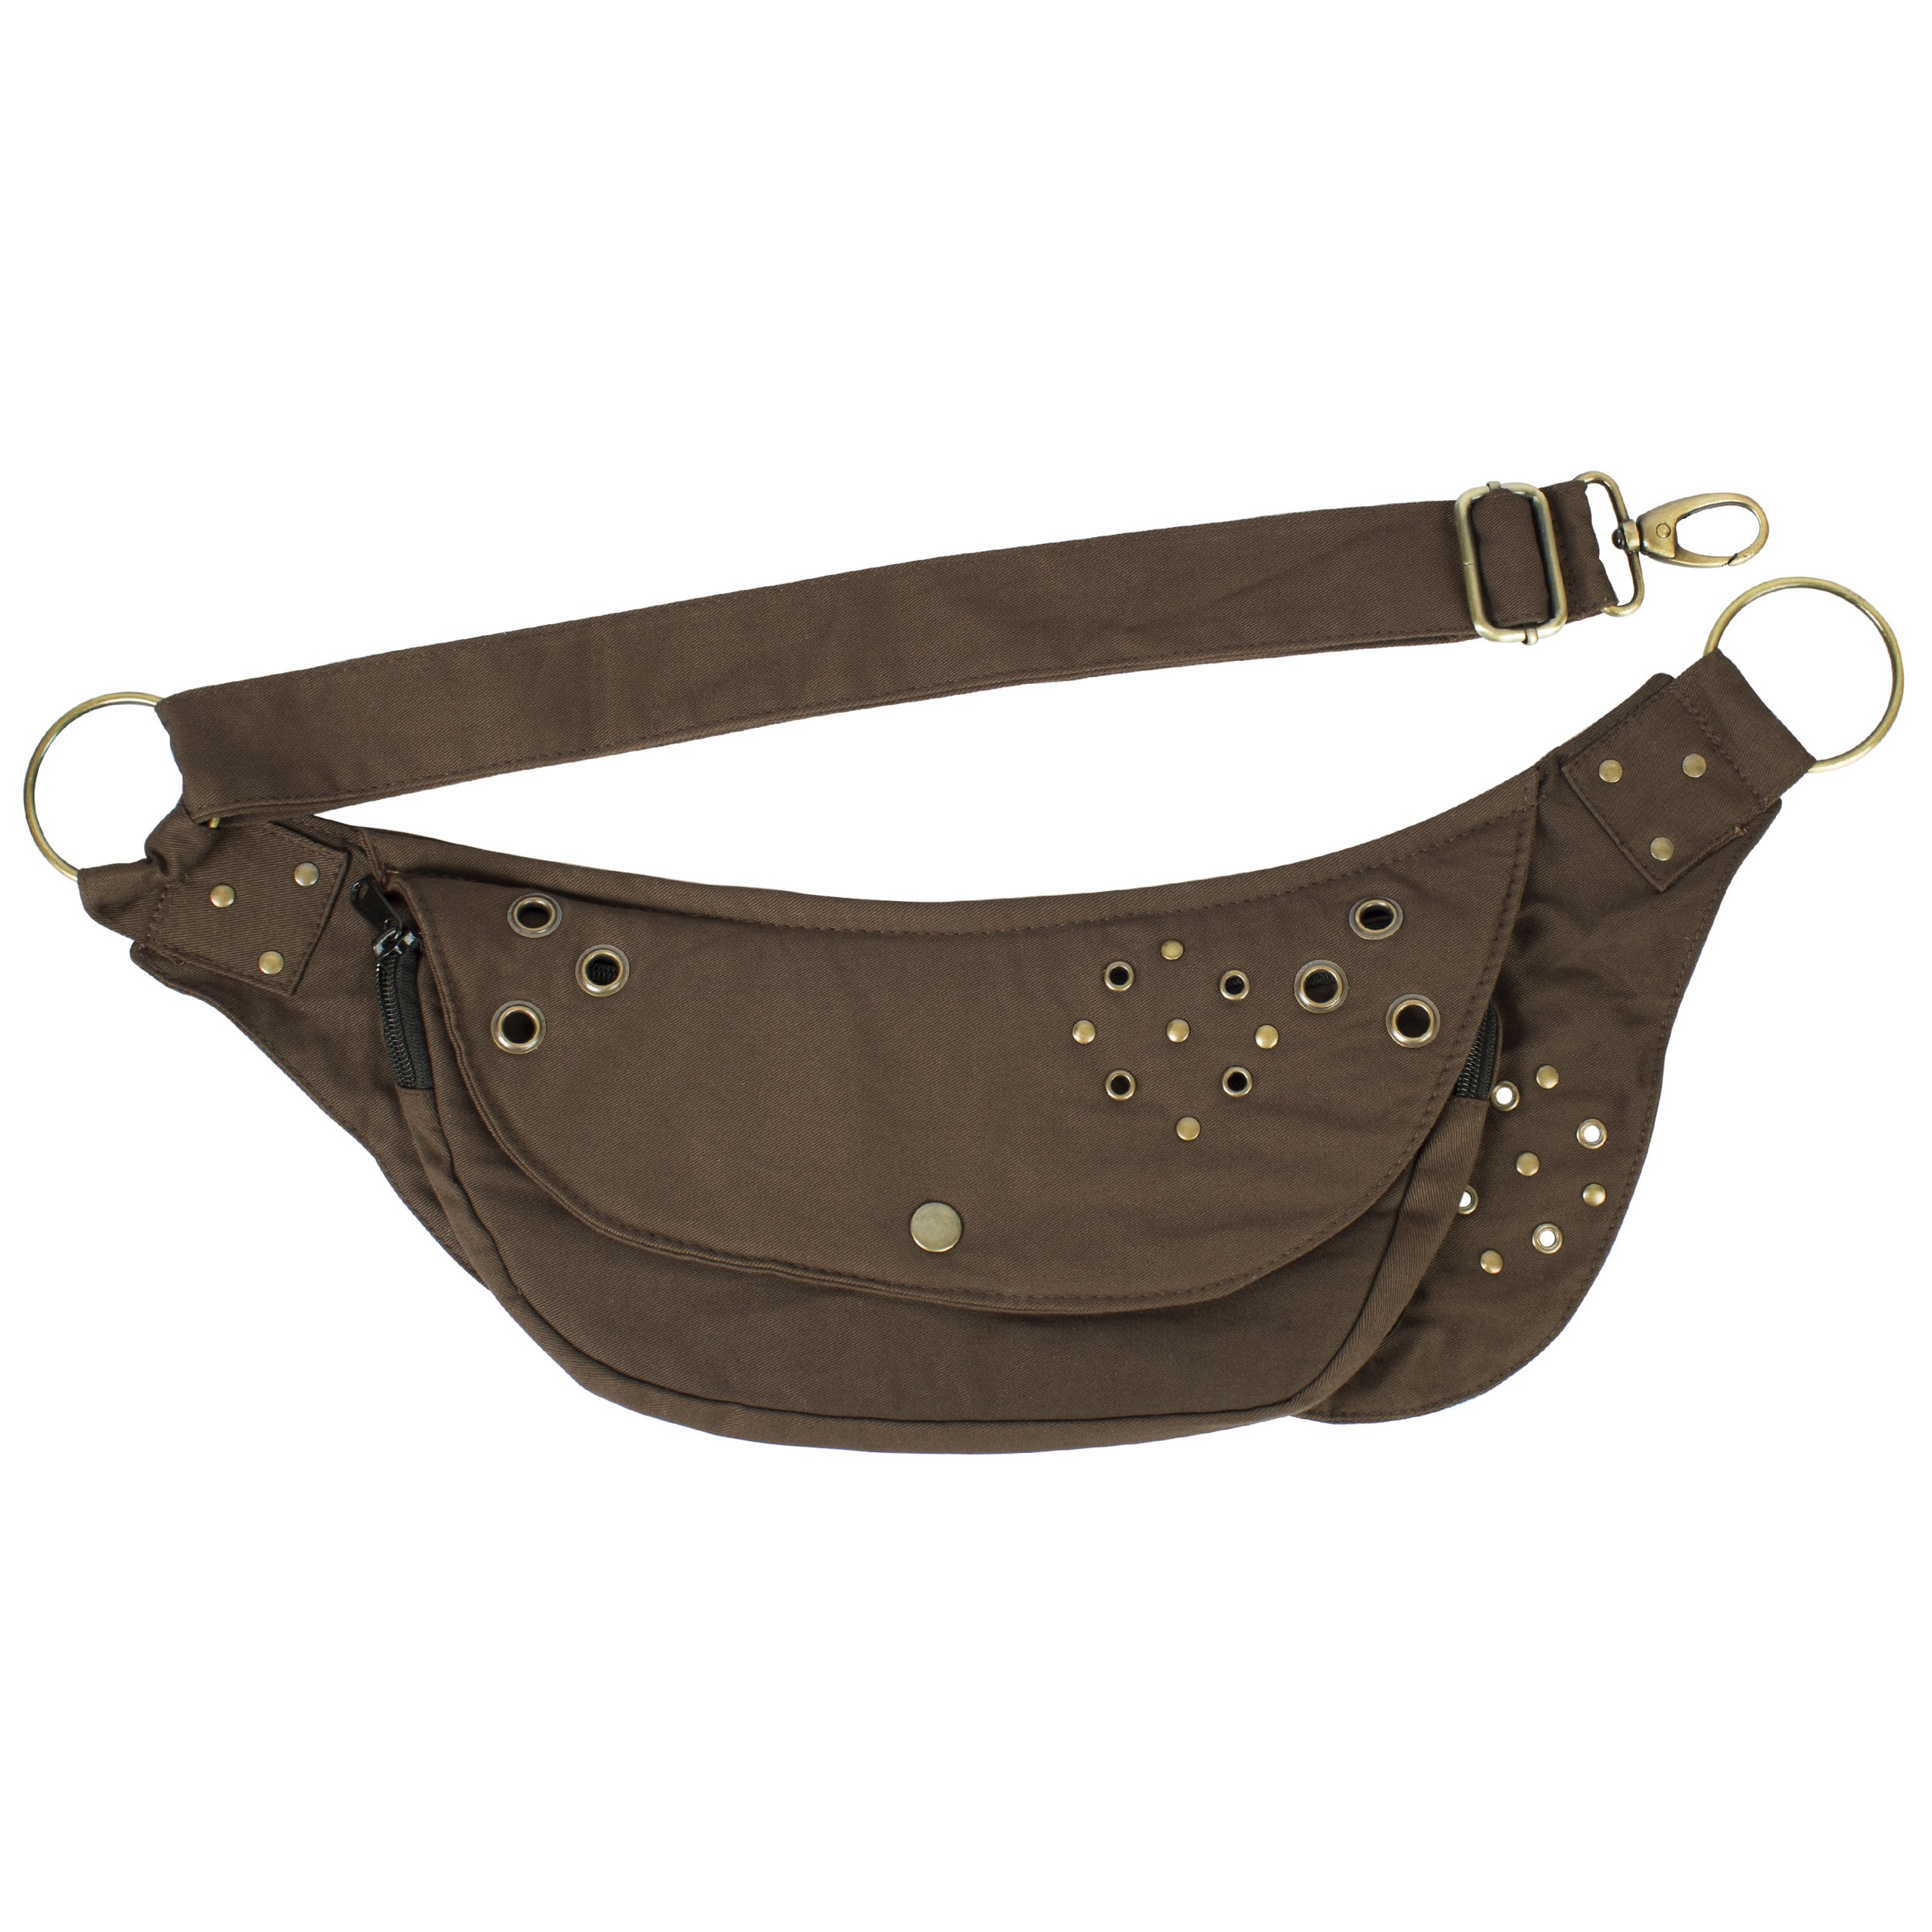 Lakhays Women's Cotton Wide Waistbag Travel Utility Belt Fanny Pack-Brown-One Size